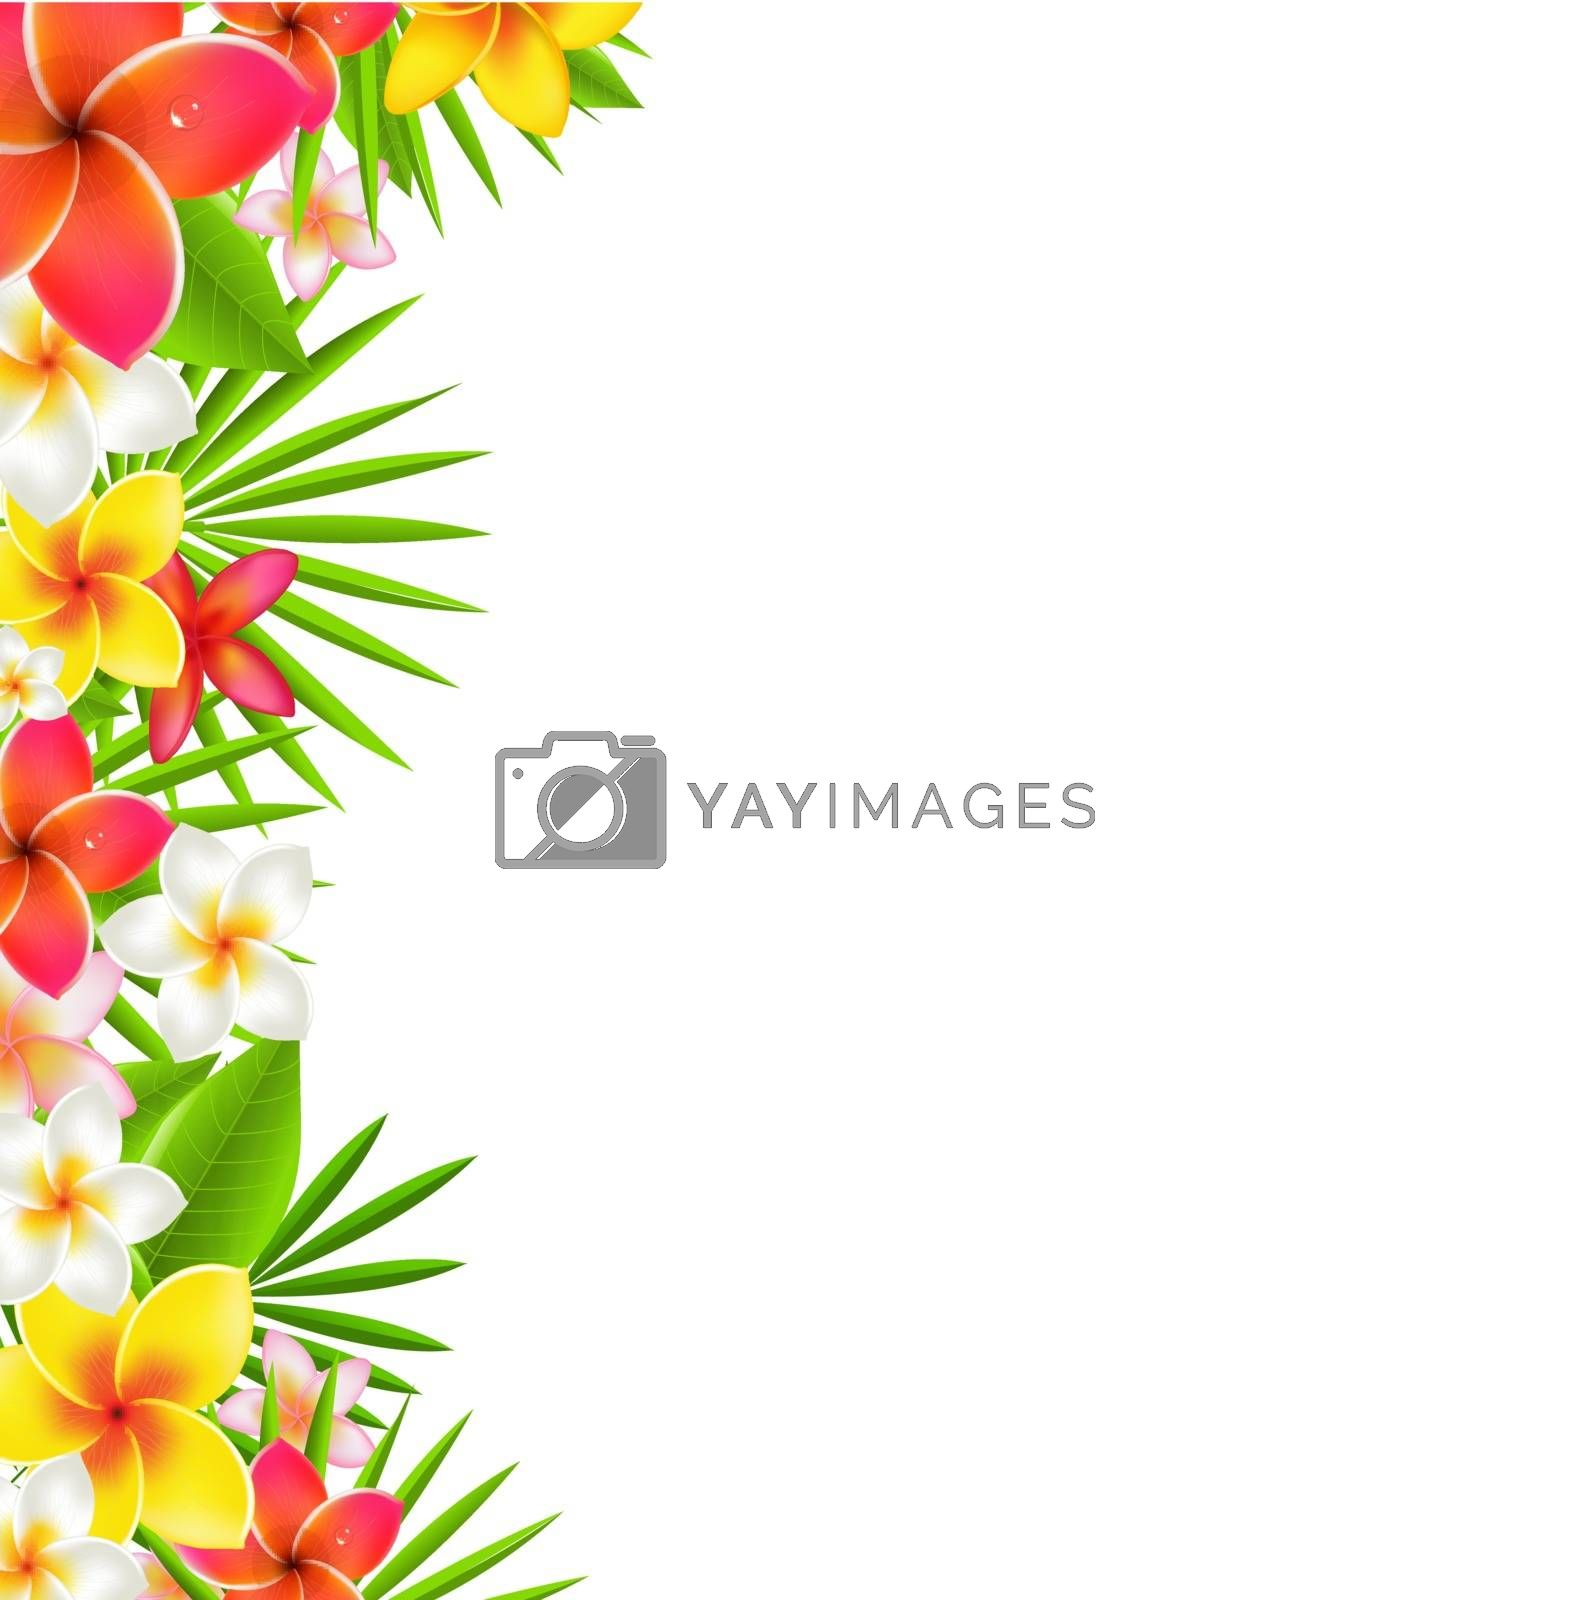 Flowers Border, With Gradient Mesh, Vector Illustration